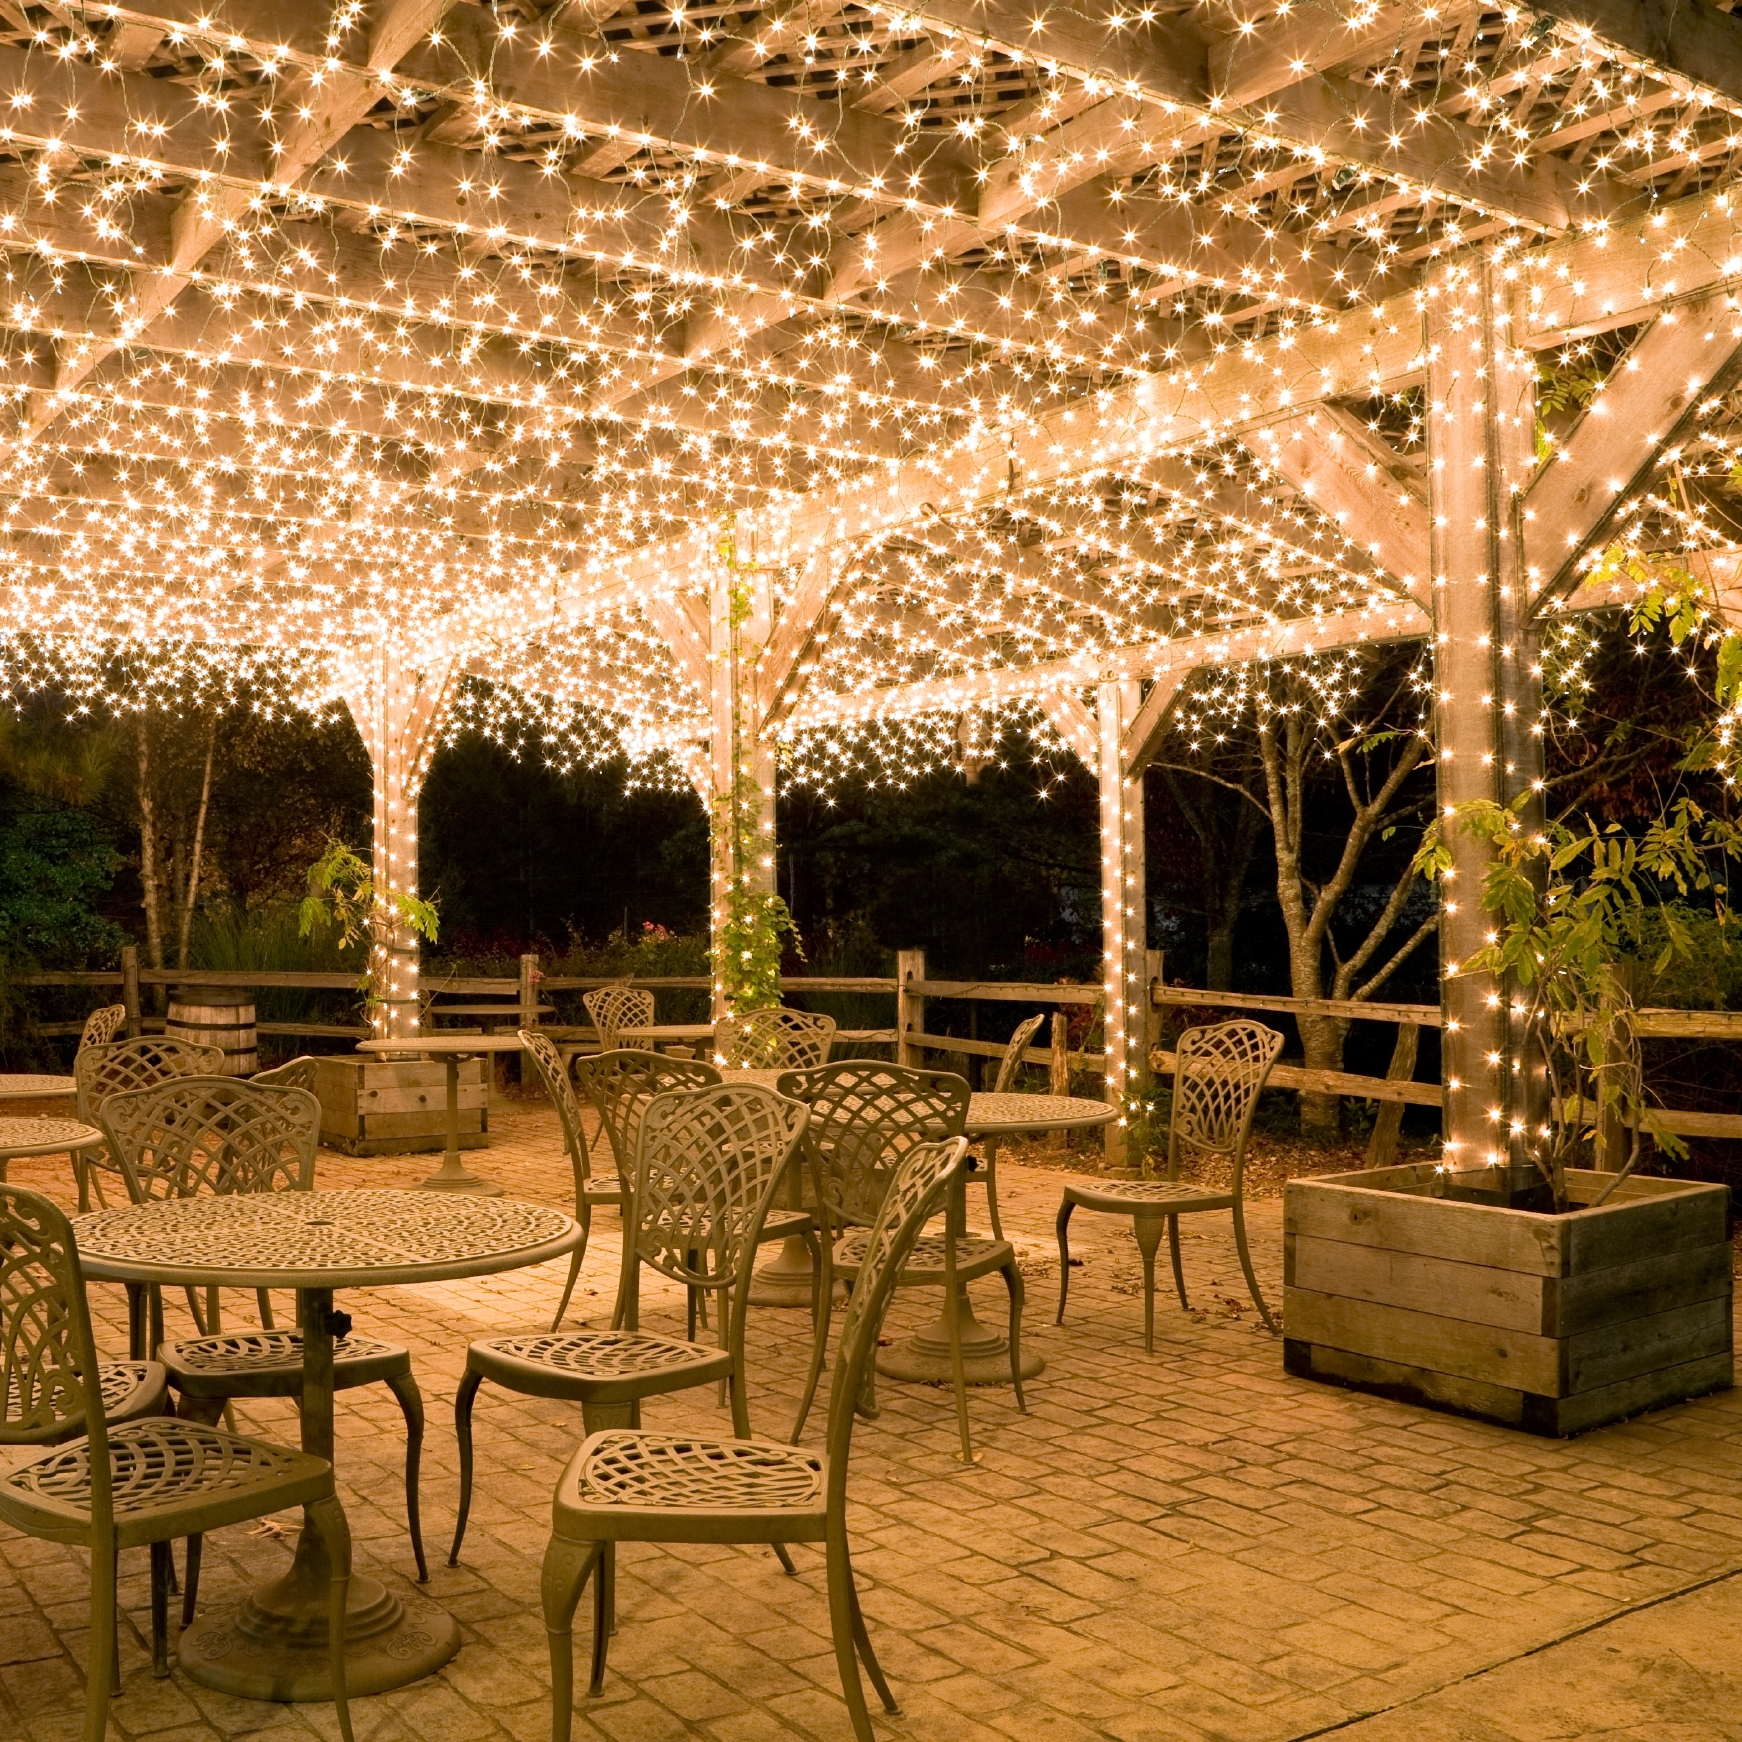 Solar Patio Lighting Ideas Outside Diy Outdoor Yard Landscape Pertaining To Current Outdoor Yard Lanterns (View 14 of 20)